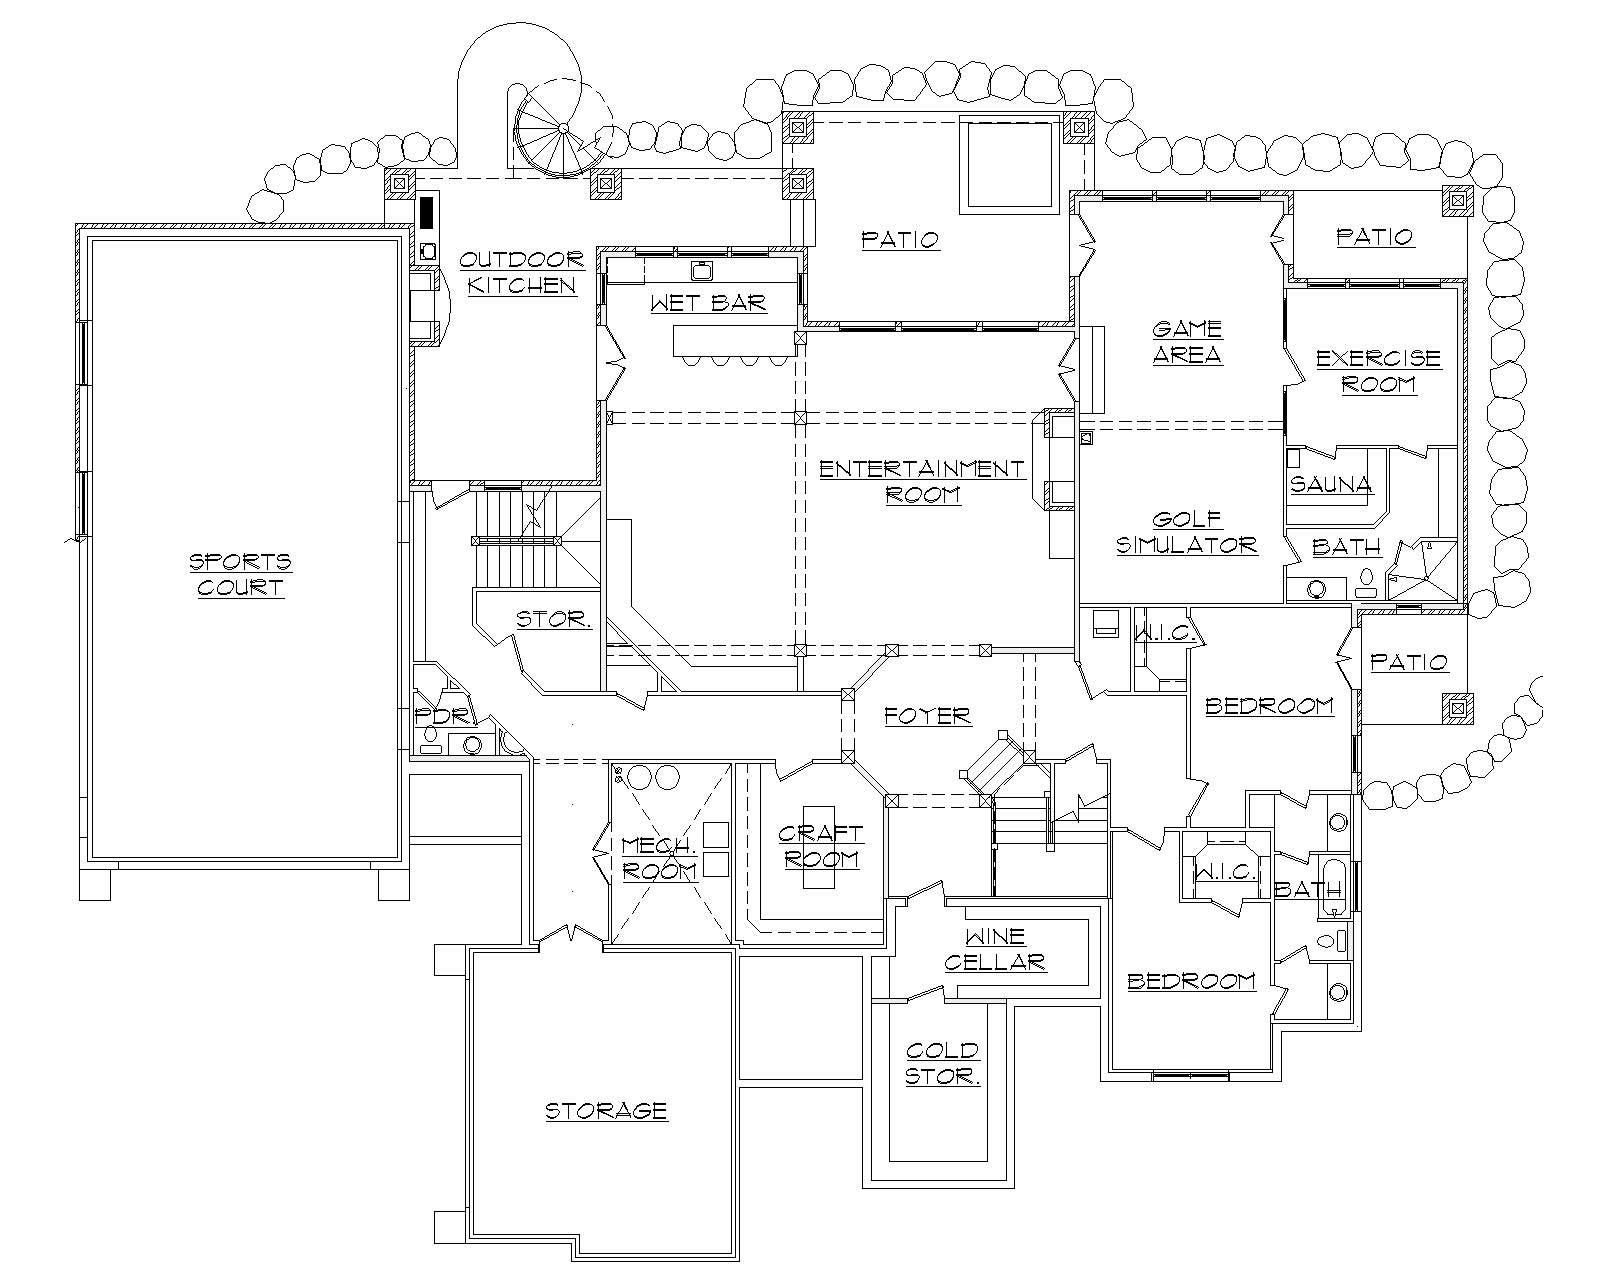 Craftsman house plan 5 bedrms 5 baths 5022 sq ft for Home basketball court size